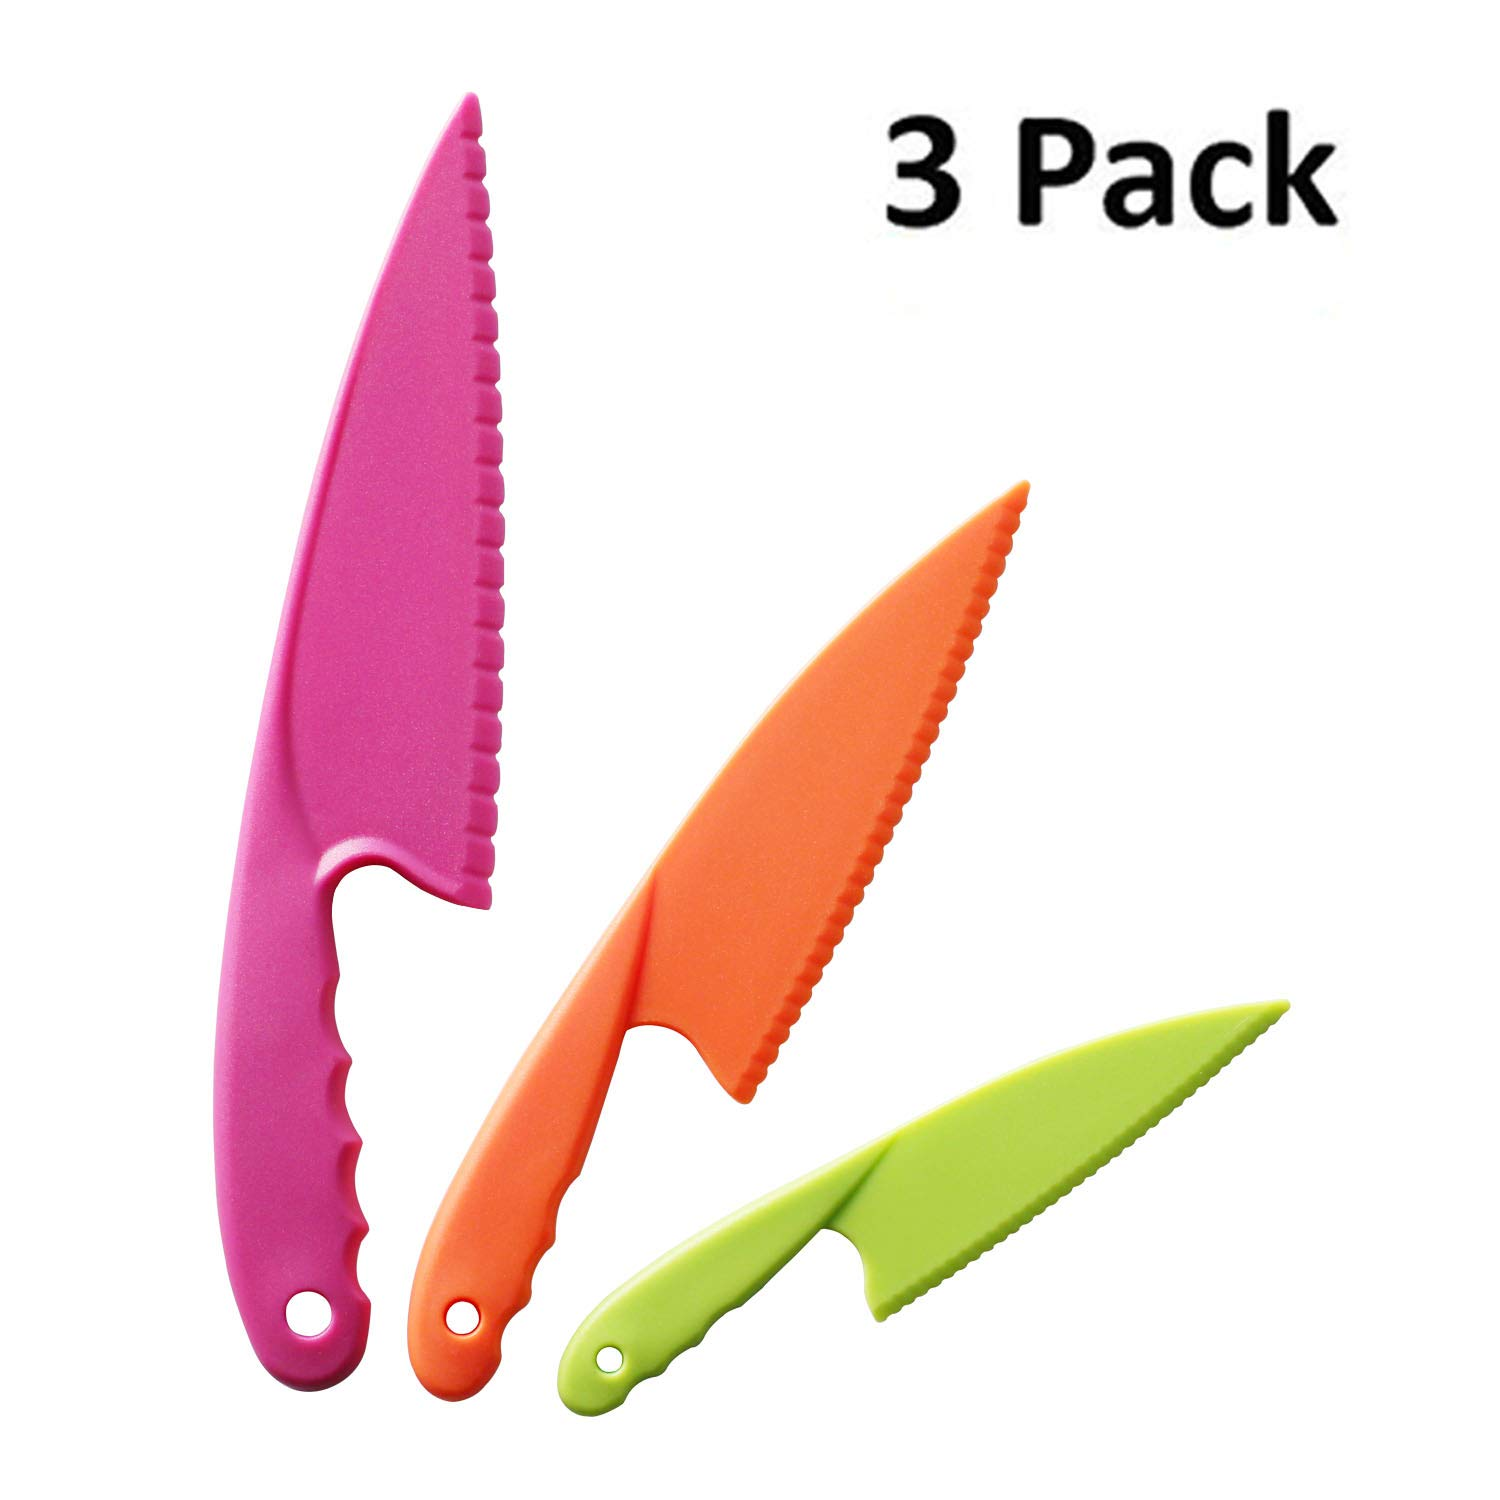 Hombae Kids Kitchen Knife Set 3 Piece Nylon Kids Chef Knife, Toddler\'s  Cooking Knives in 3 Sizes and Colors, BPA Free Plastic, Safe Knives for  Bread, ...